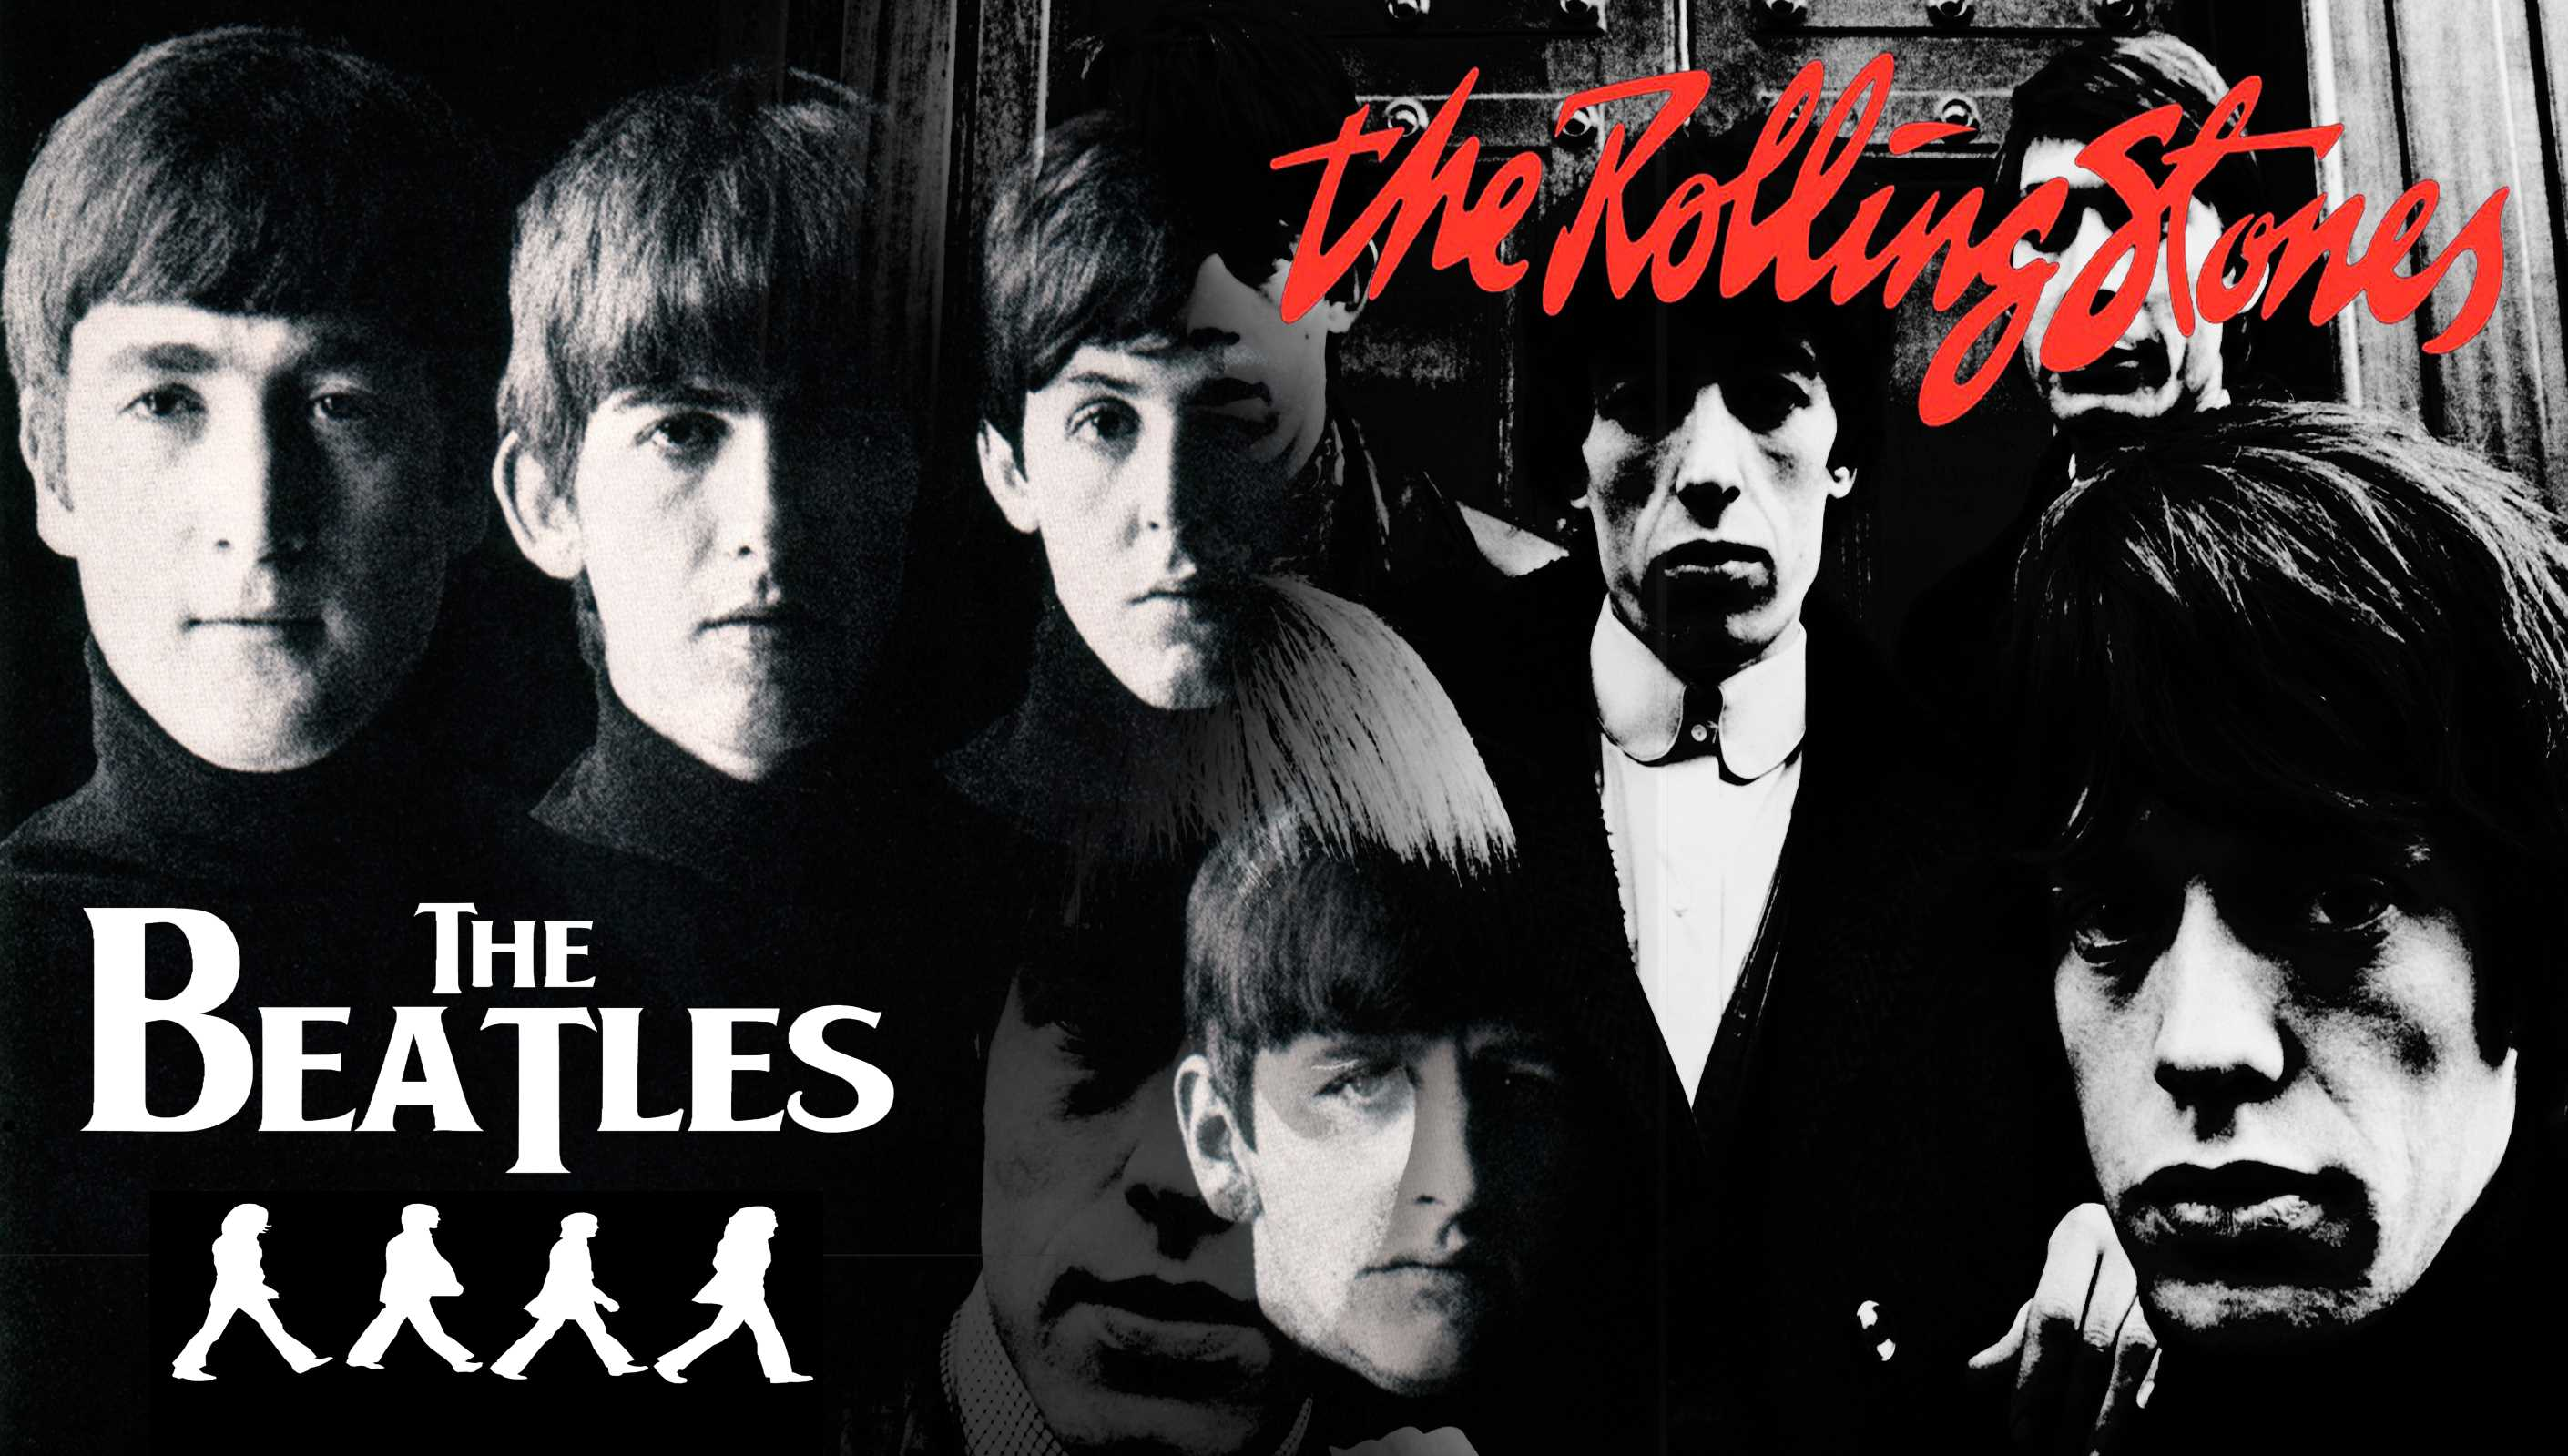 a comparison of the beatles and the rolling stones Beatles were pop stones were rock that's overly simplistic just like saying the beatles were innovators and the stones were followers but in the most.